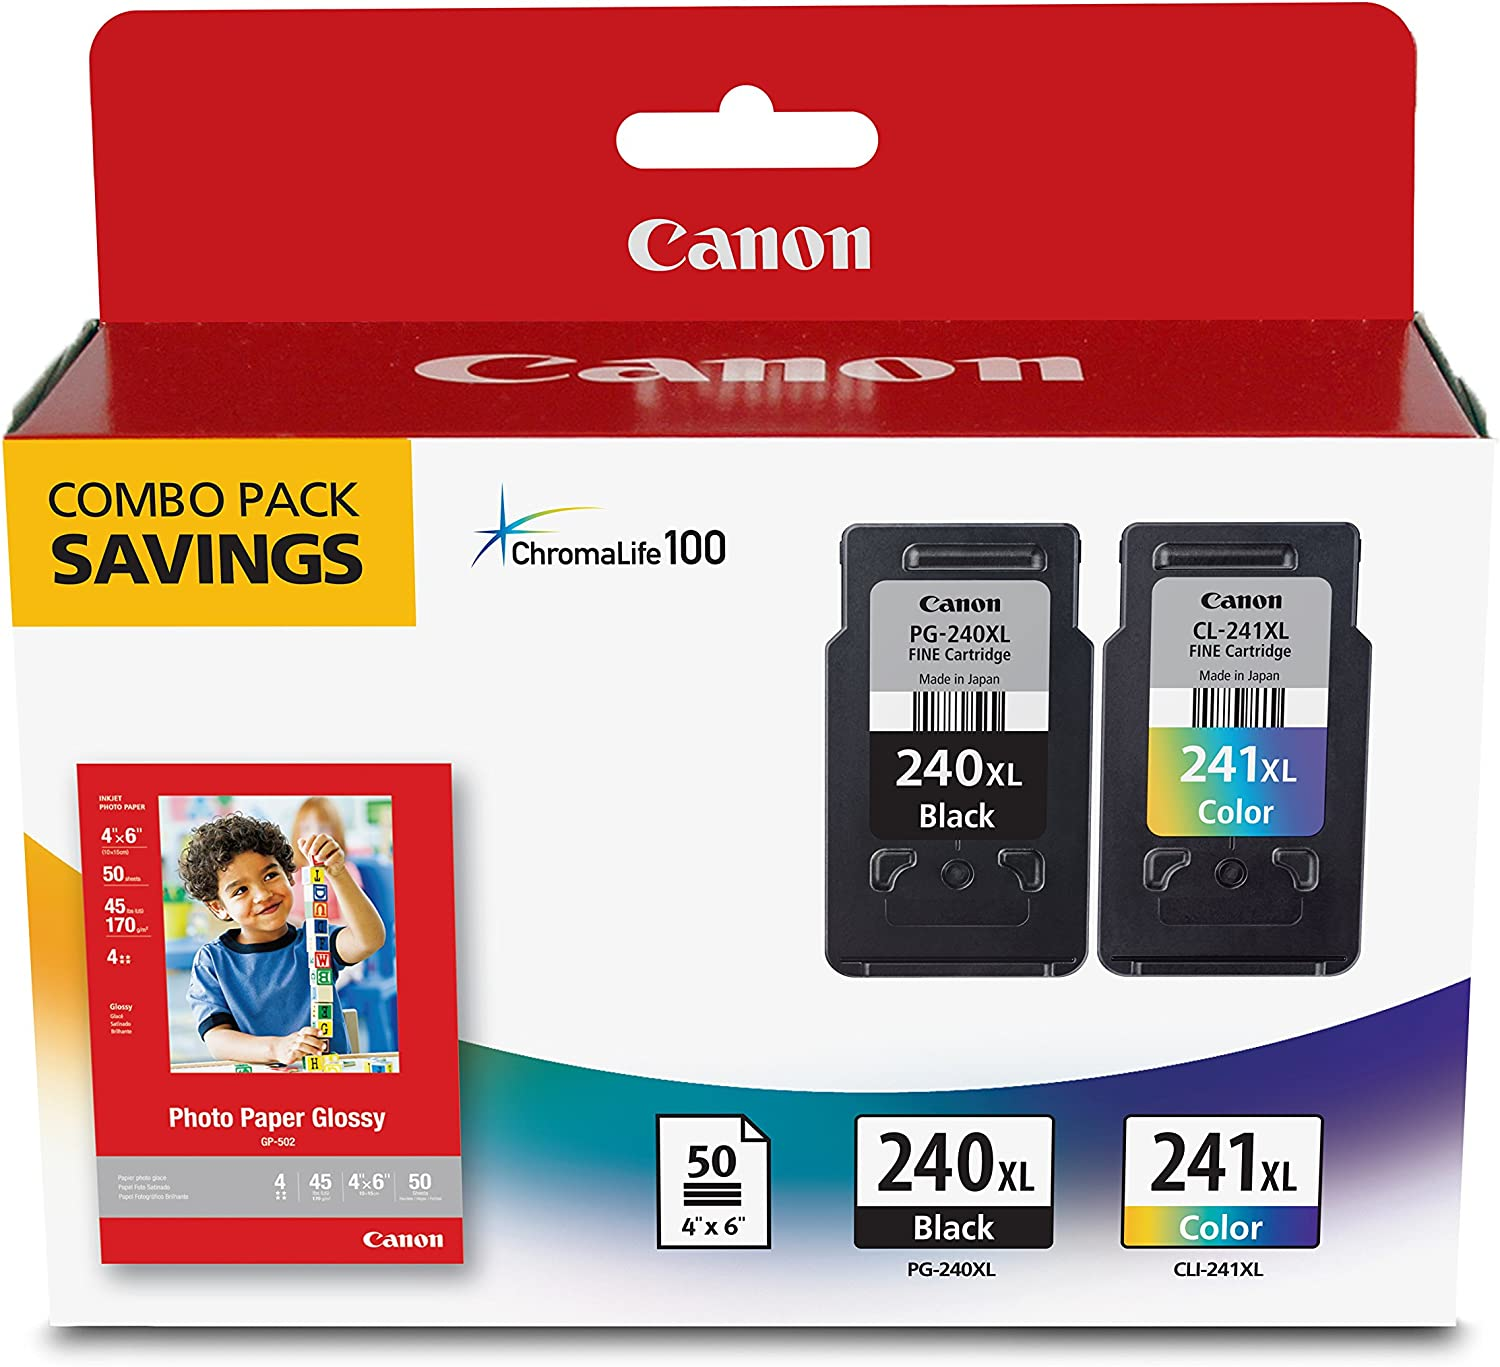 Canon PG-240XL/CL-241XL with Photo Paper 50 Sheets Compatible to MG2120, MG3120, MG4120, MX512, MX432, MX372, MX522, MX452, MX392, MG2220, MG3220, MG4220, MG3520, MG3620, TS5120